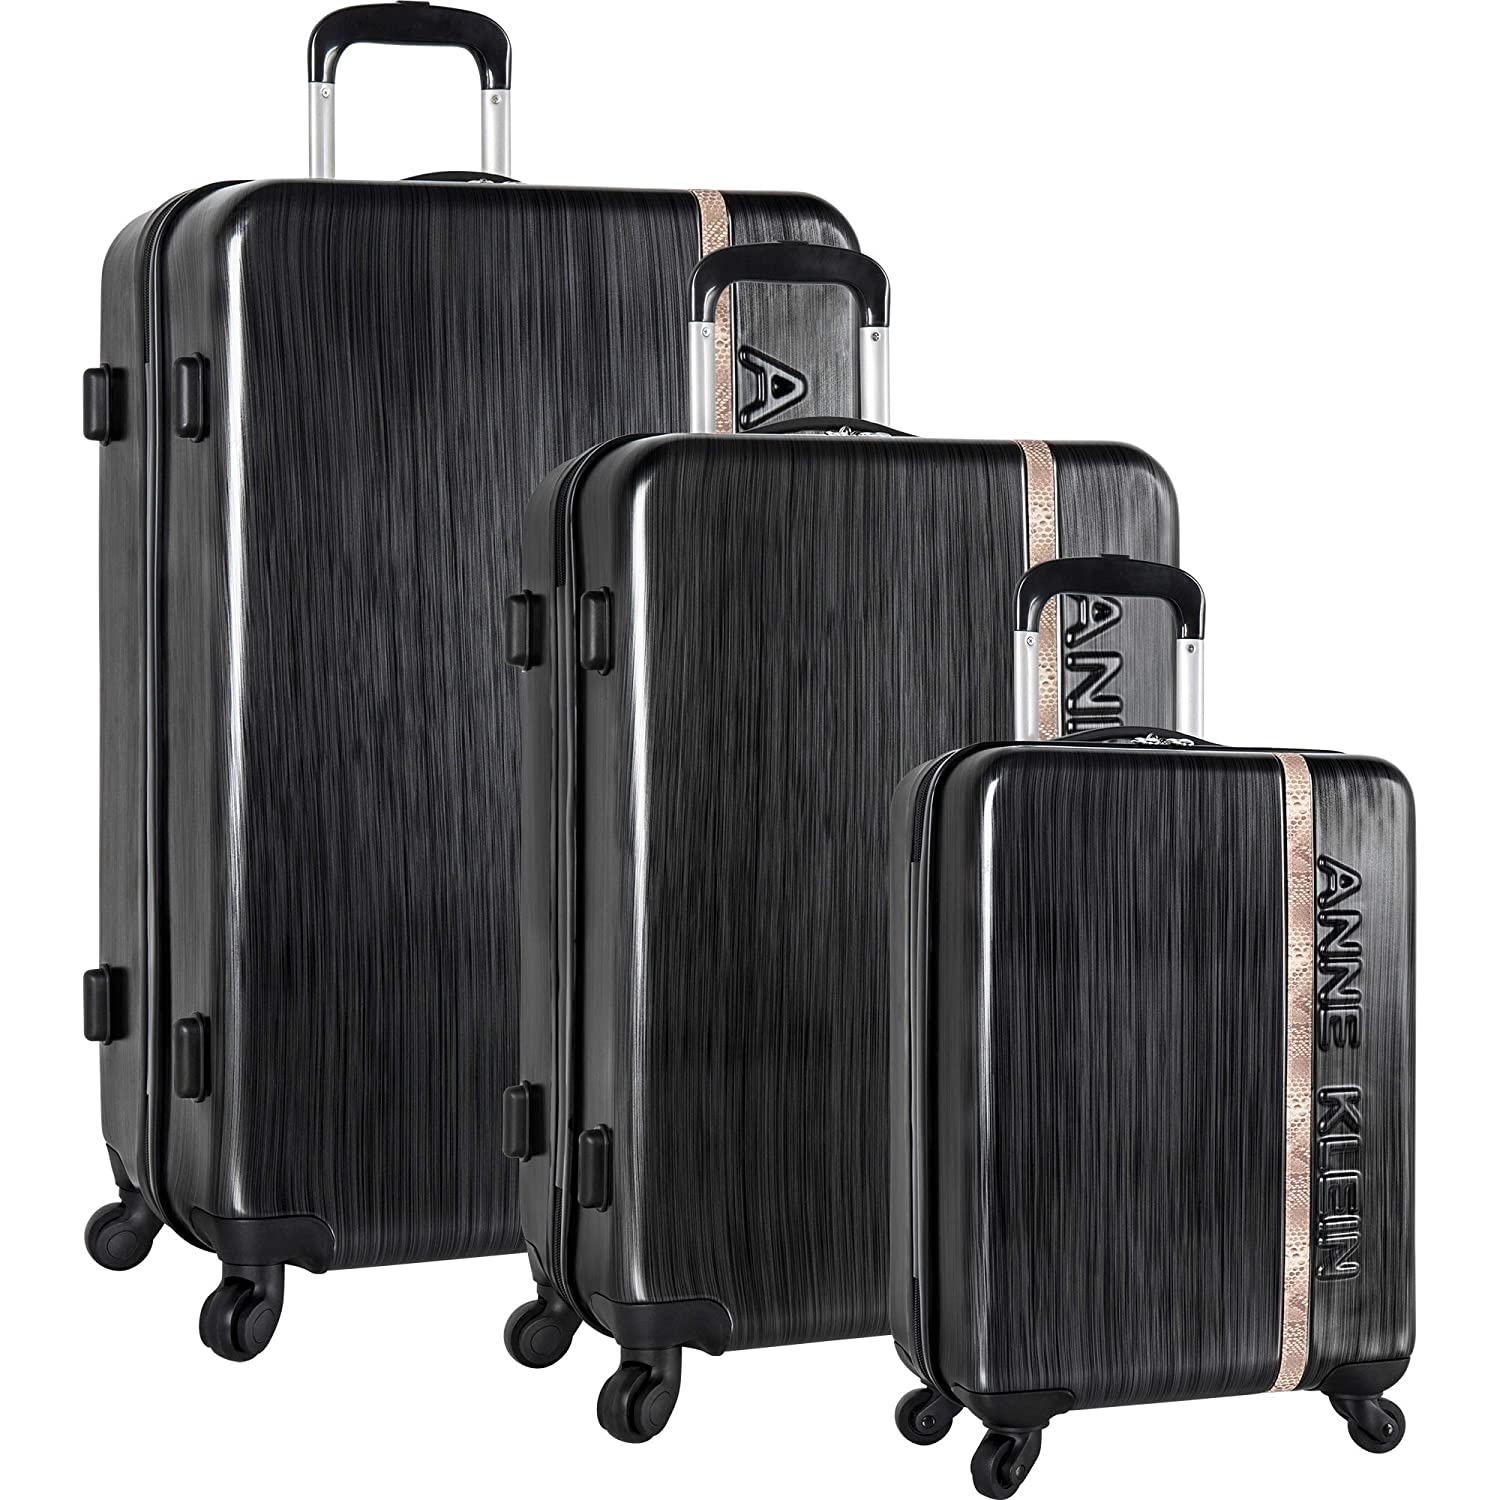 Image of Anne Klein 3 Piece Hardside Spinner Luggage Suitcase Set Luggage